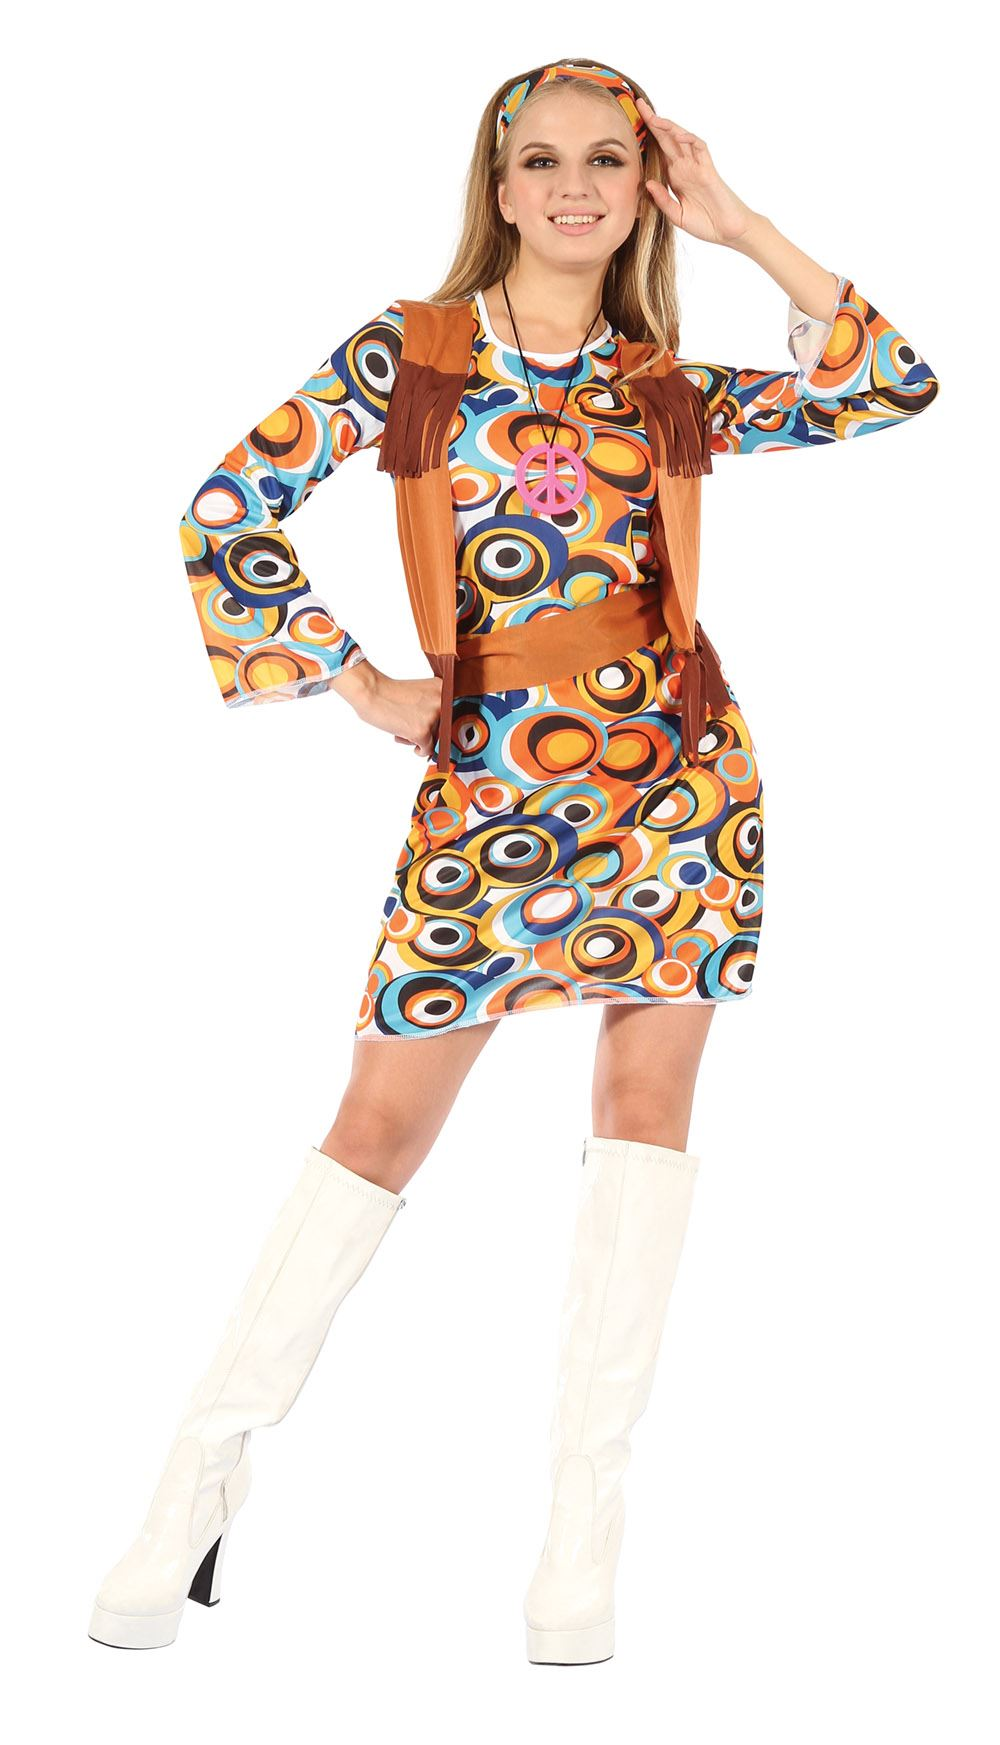 ladies 60s 70s groovy hippy flower power hippie mod 10 12 14 fancy dress costume ebay. Black Bedroom Furniture Sets. Home Design Ideas